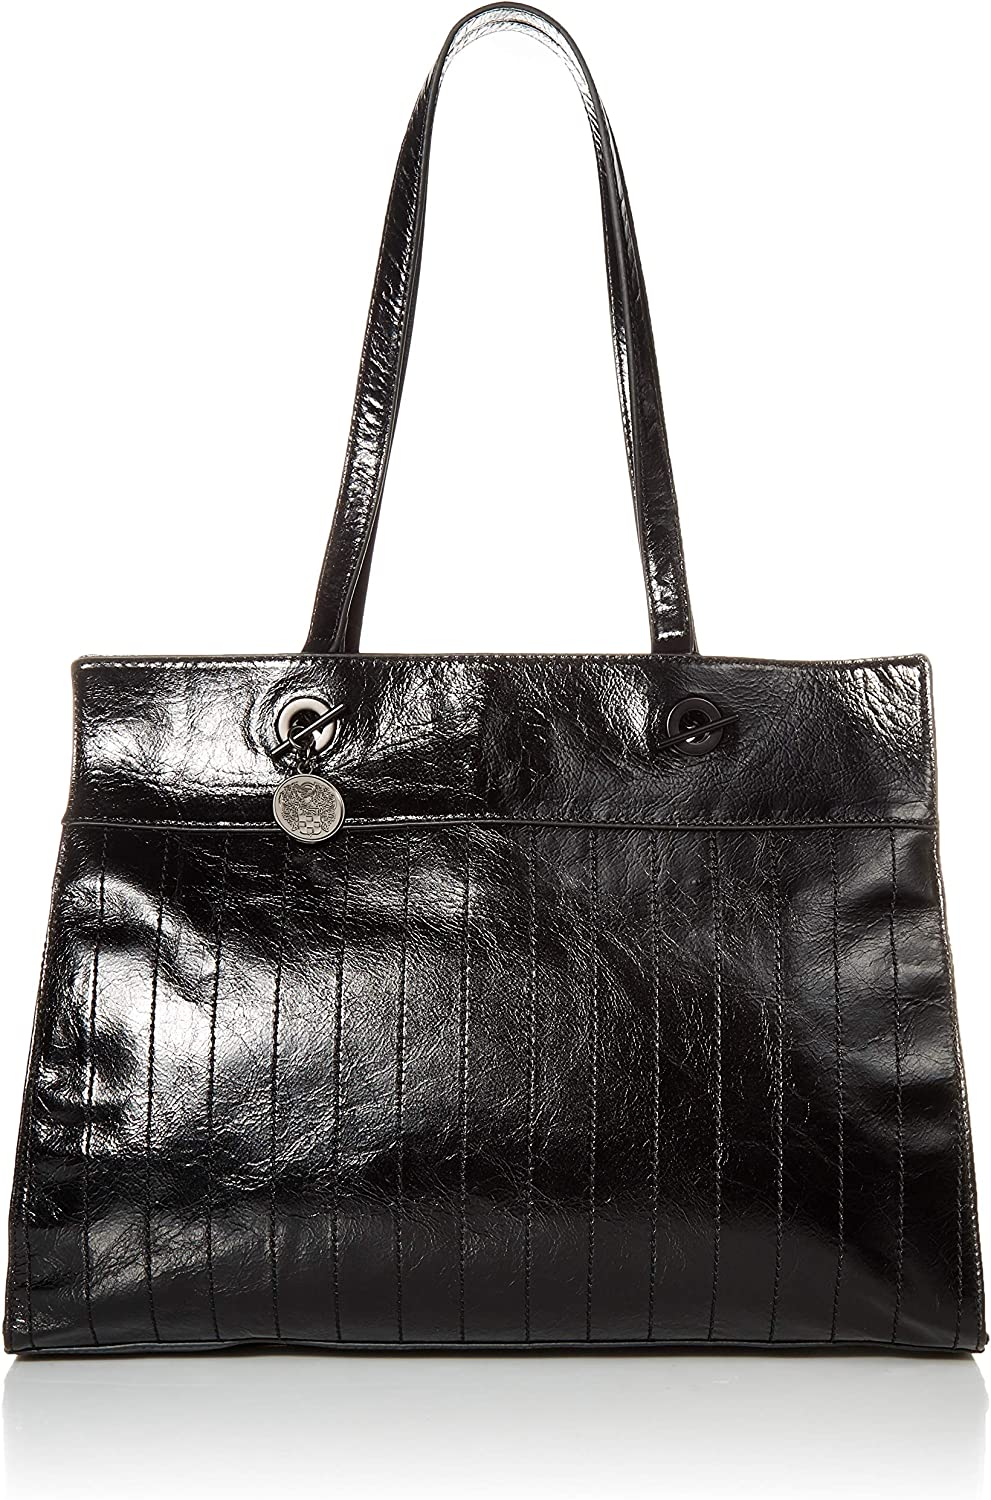 Vince Camuto Tote 1 Free shipping year warranty Keely